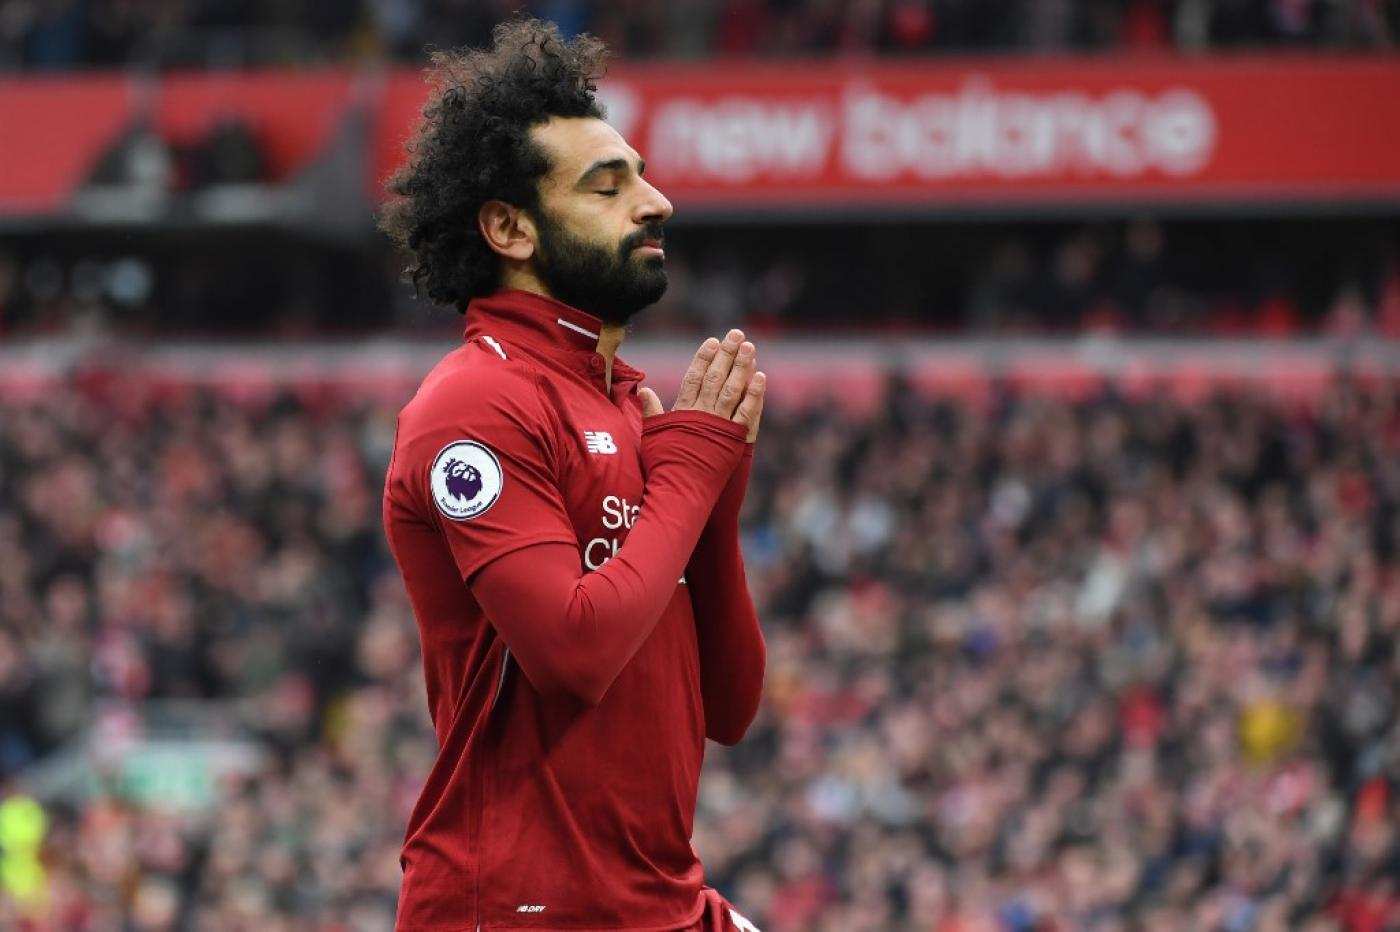 Mohamed Salah keeps his balance while Islamophobia persists